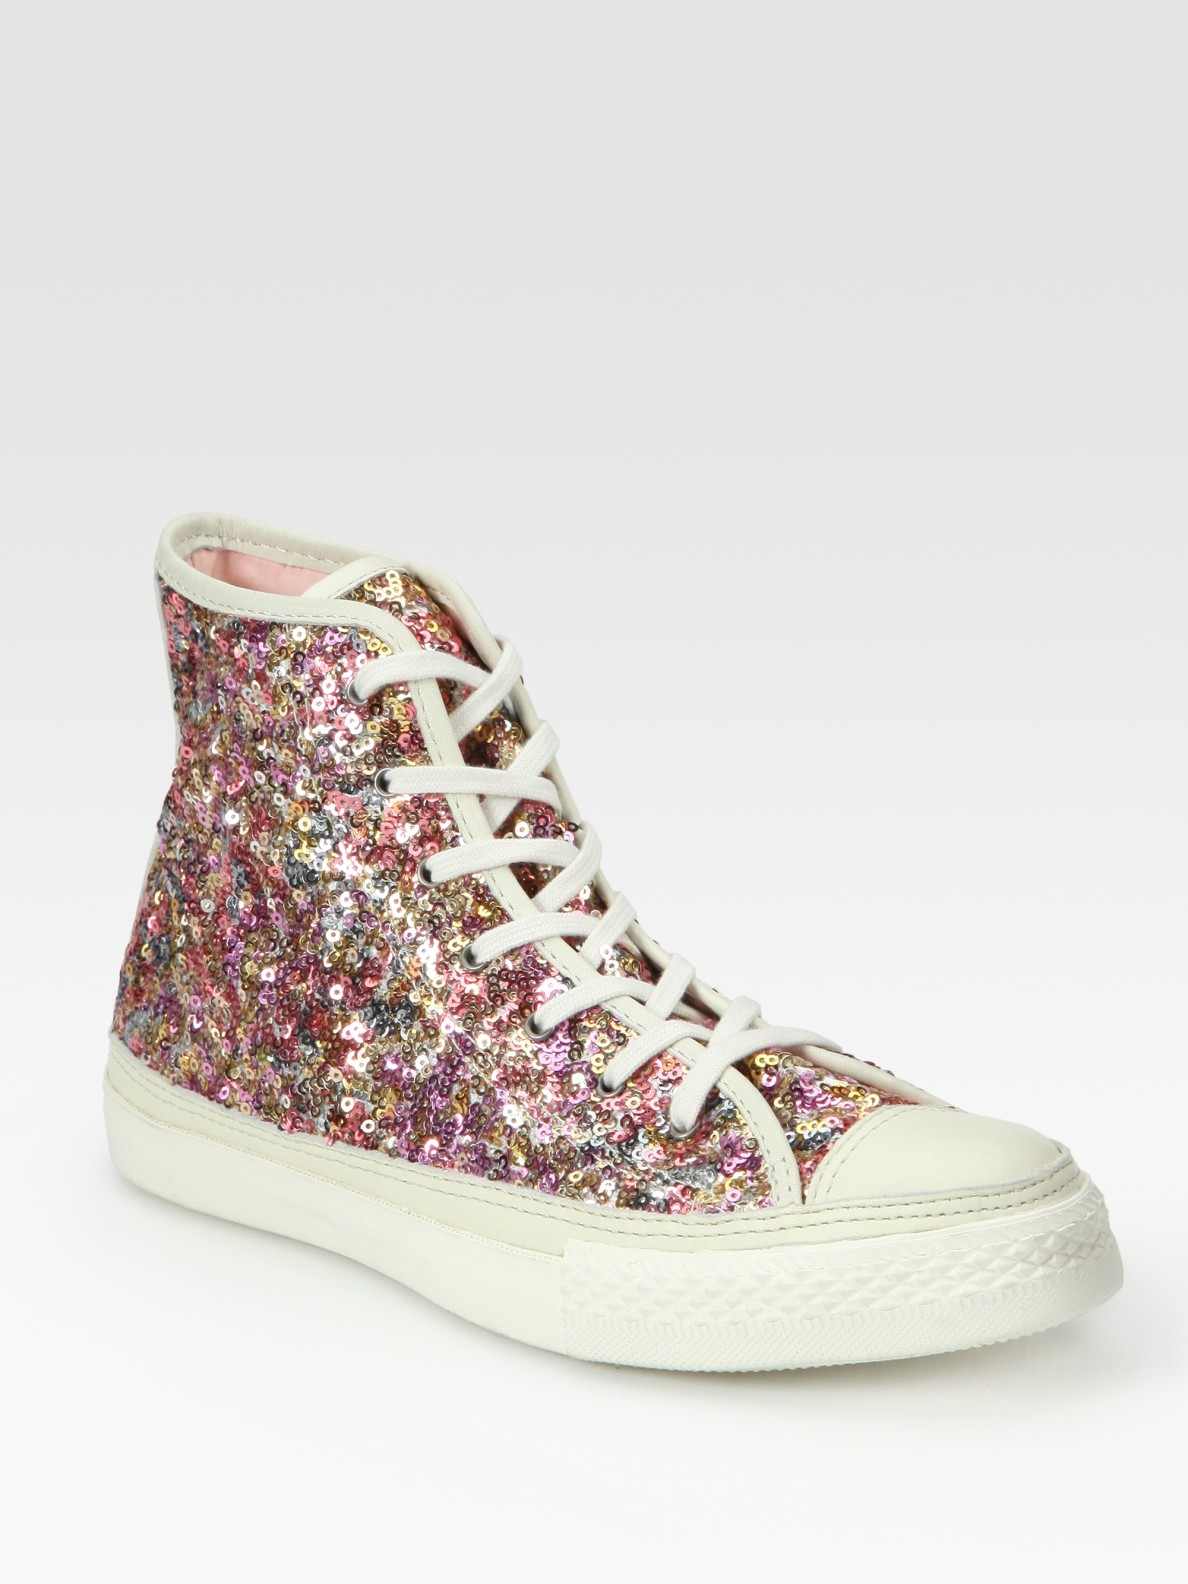 65f7e5e6572c Lyst - Converse Sequin High-top Sneakers in Pink